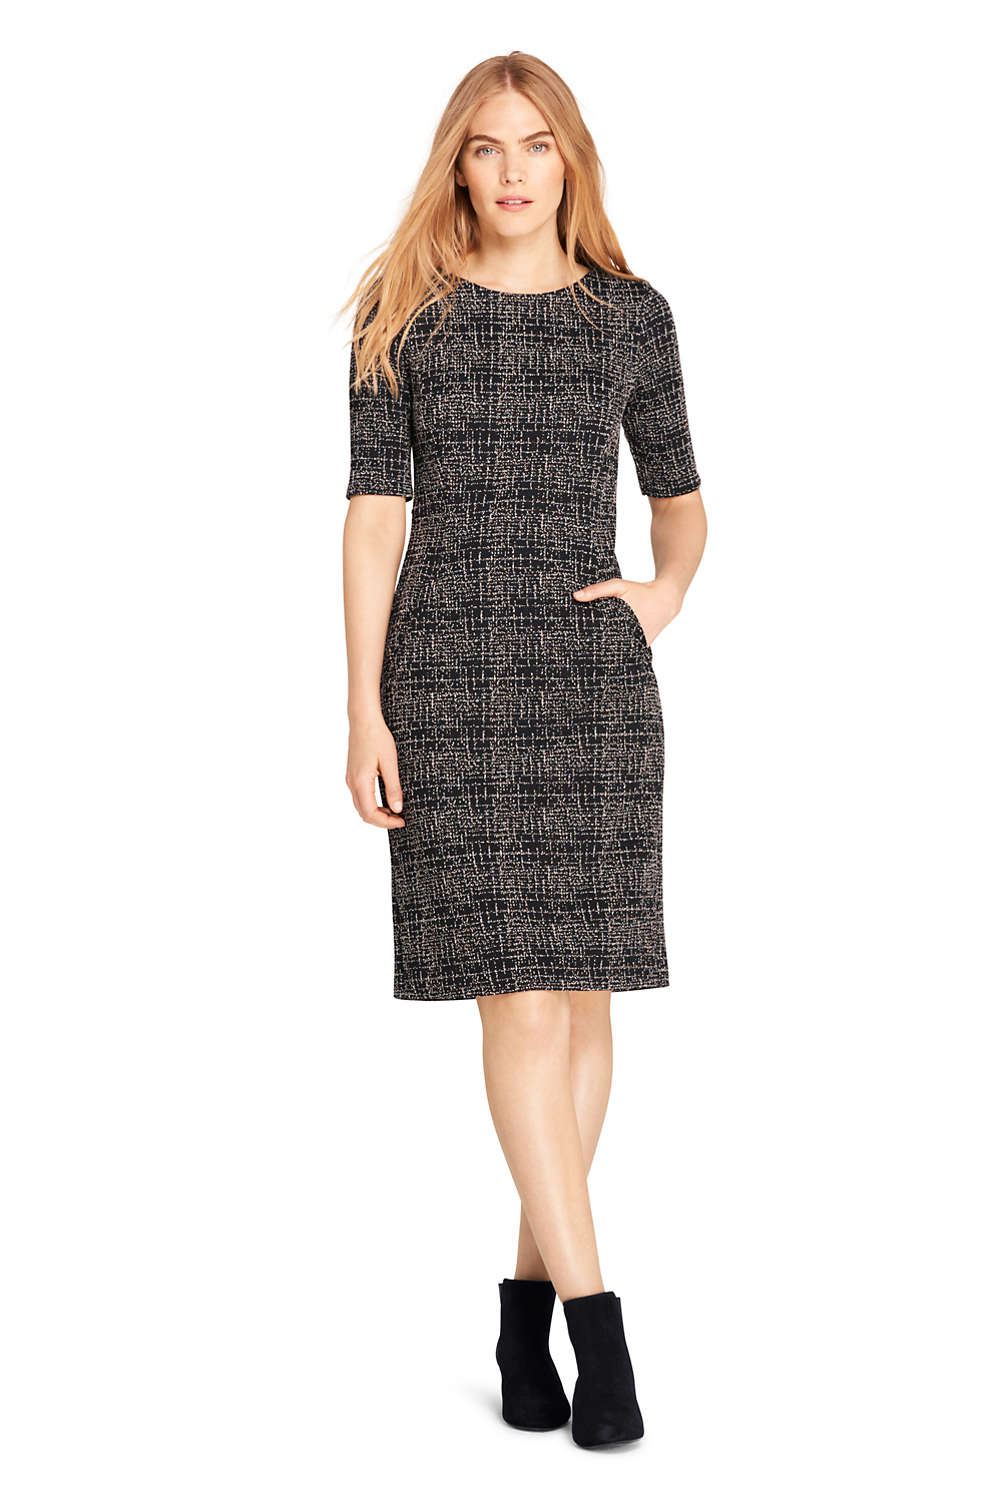 587d6deefbb Women s Ponte Knit Sheath Tweed Dress with Elbow Sleeves from Lands  End